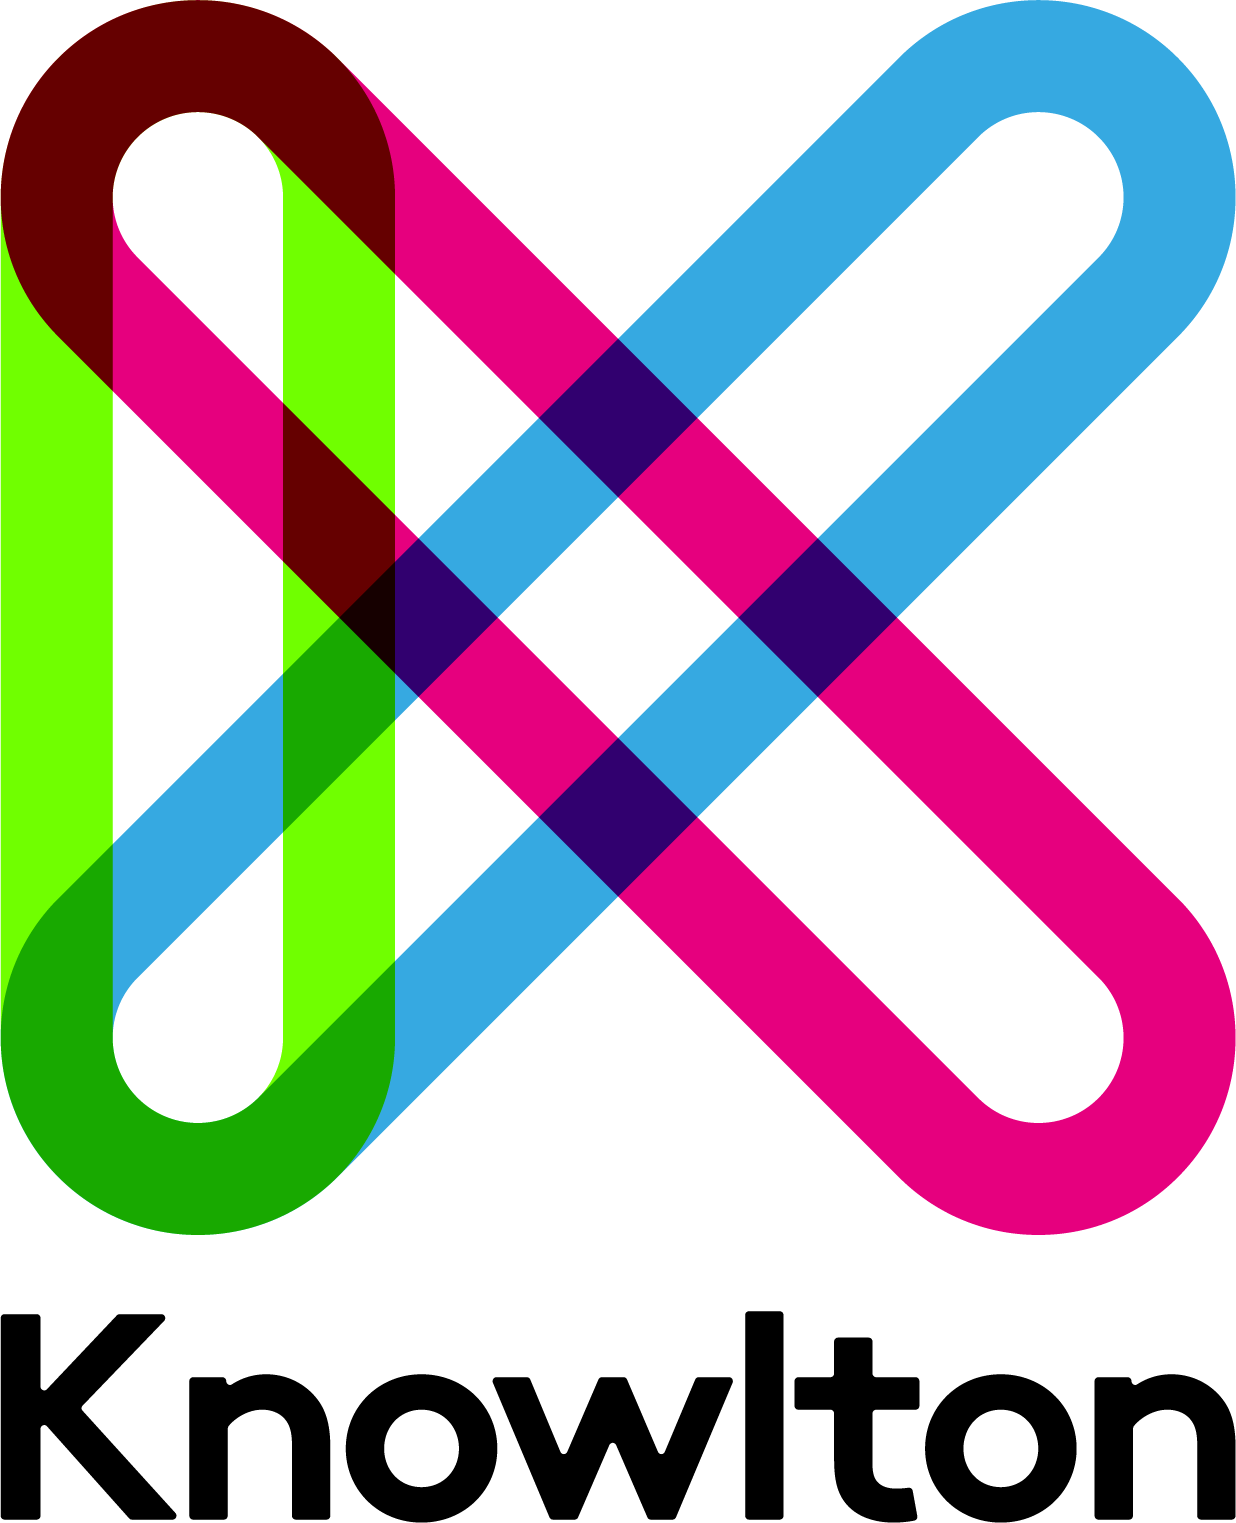 Digital_Knowlton_Logo_FullColour_Stacked_RGB.png